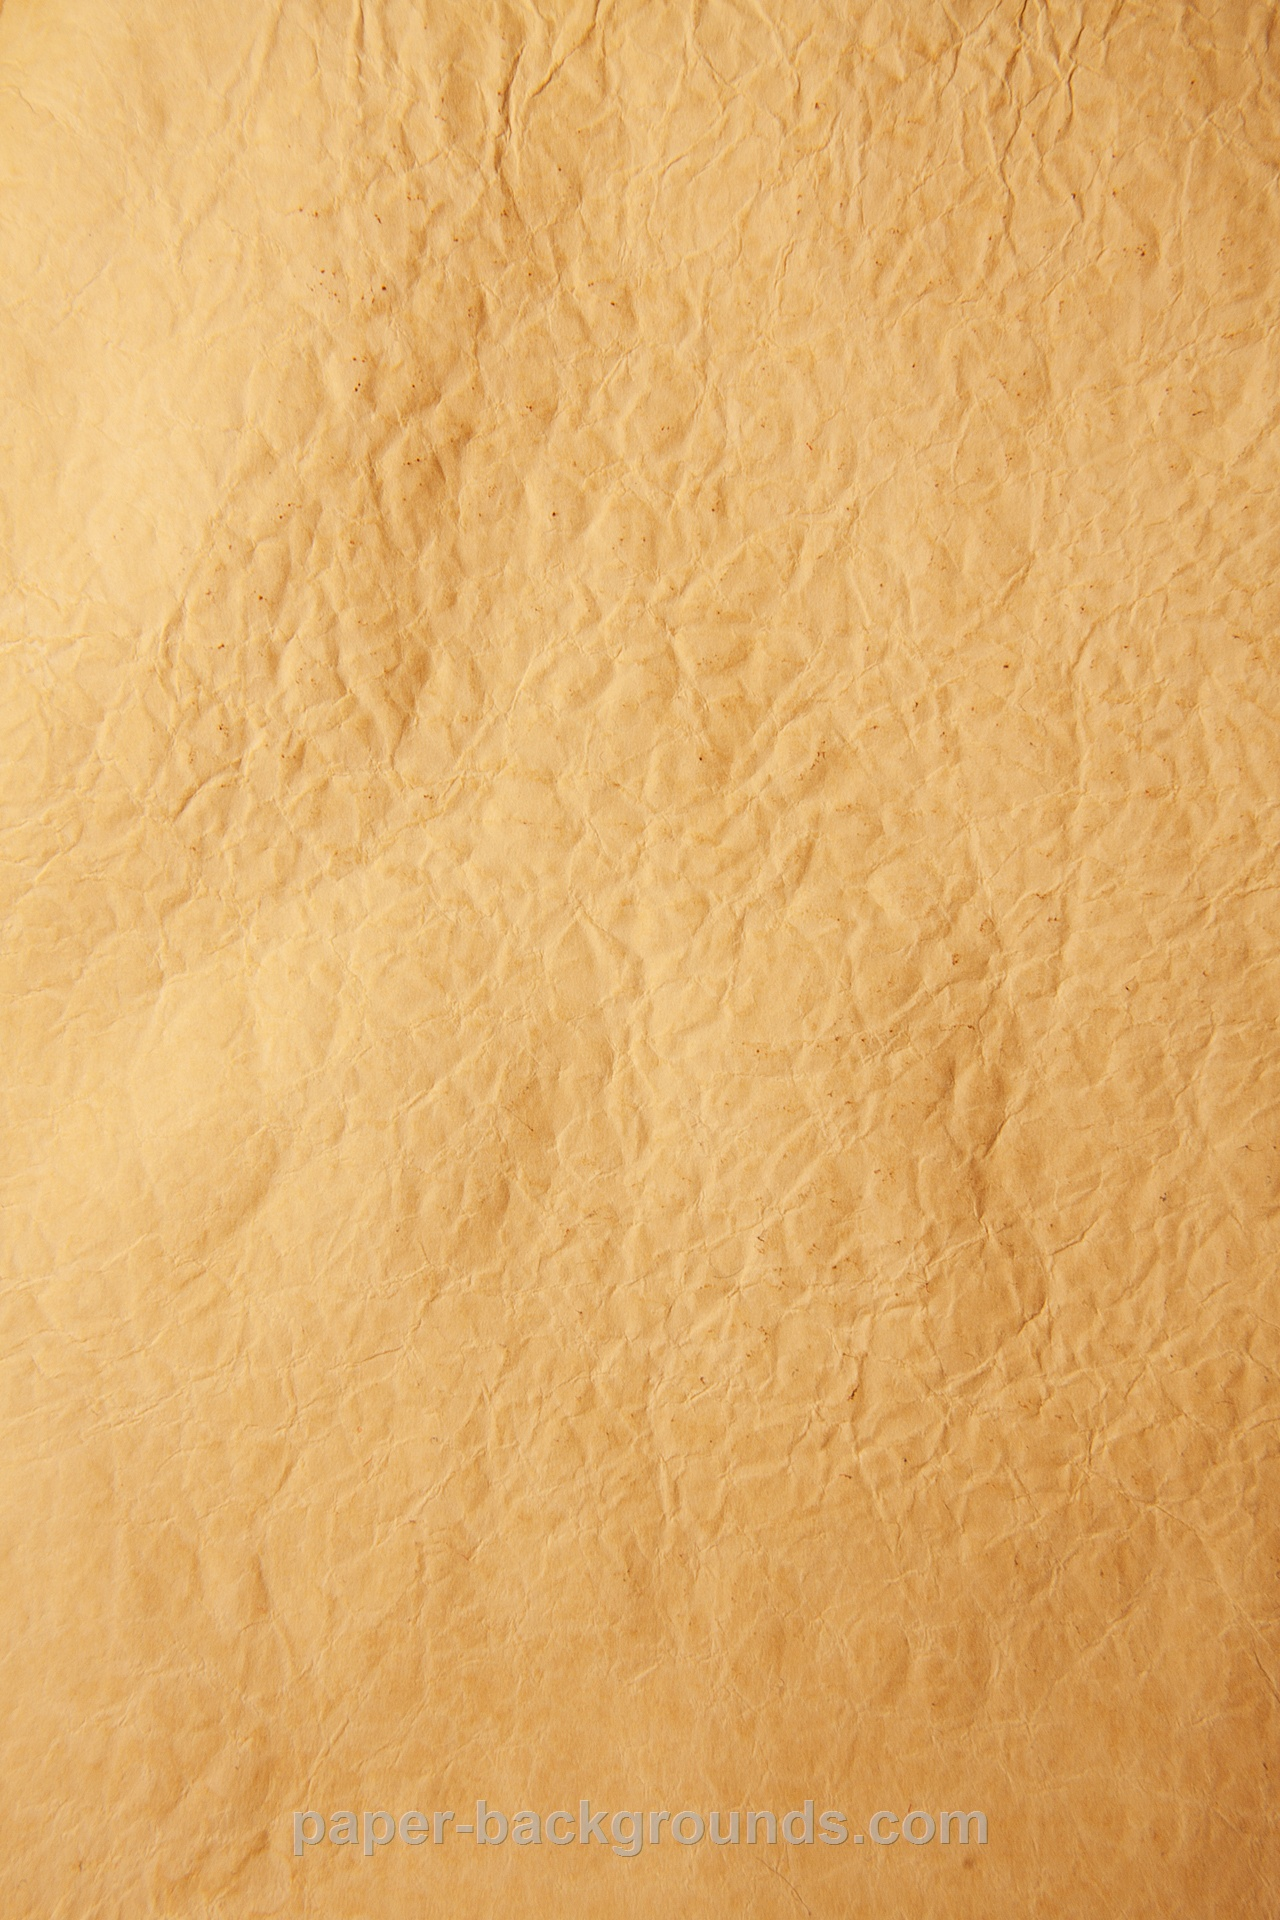 Vintage Wrinkled Paper Background Texture HD